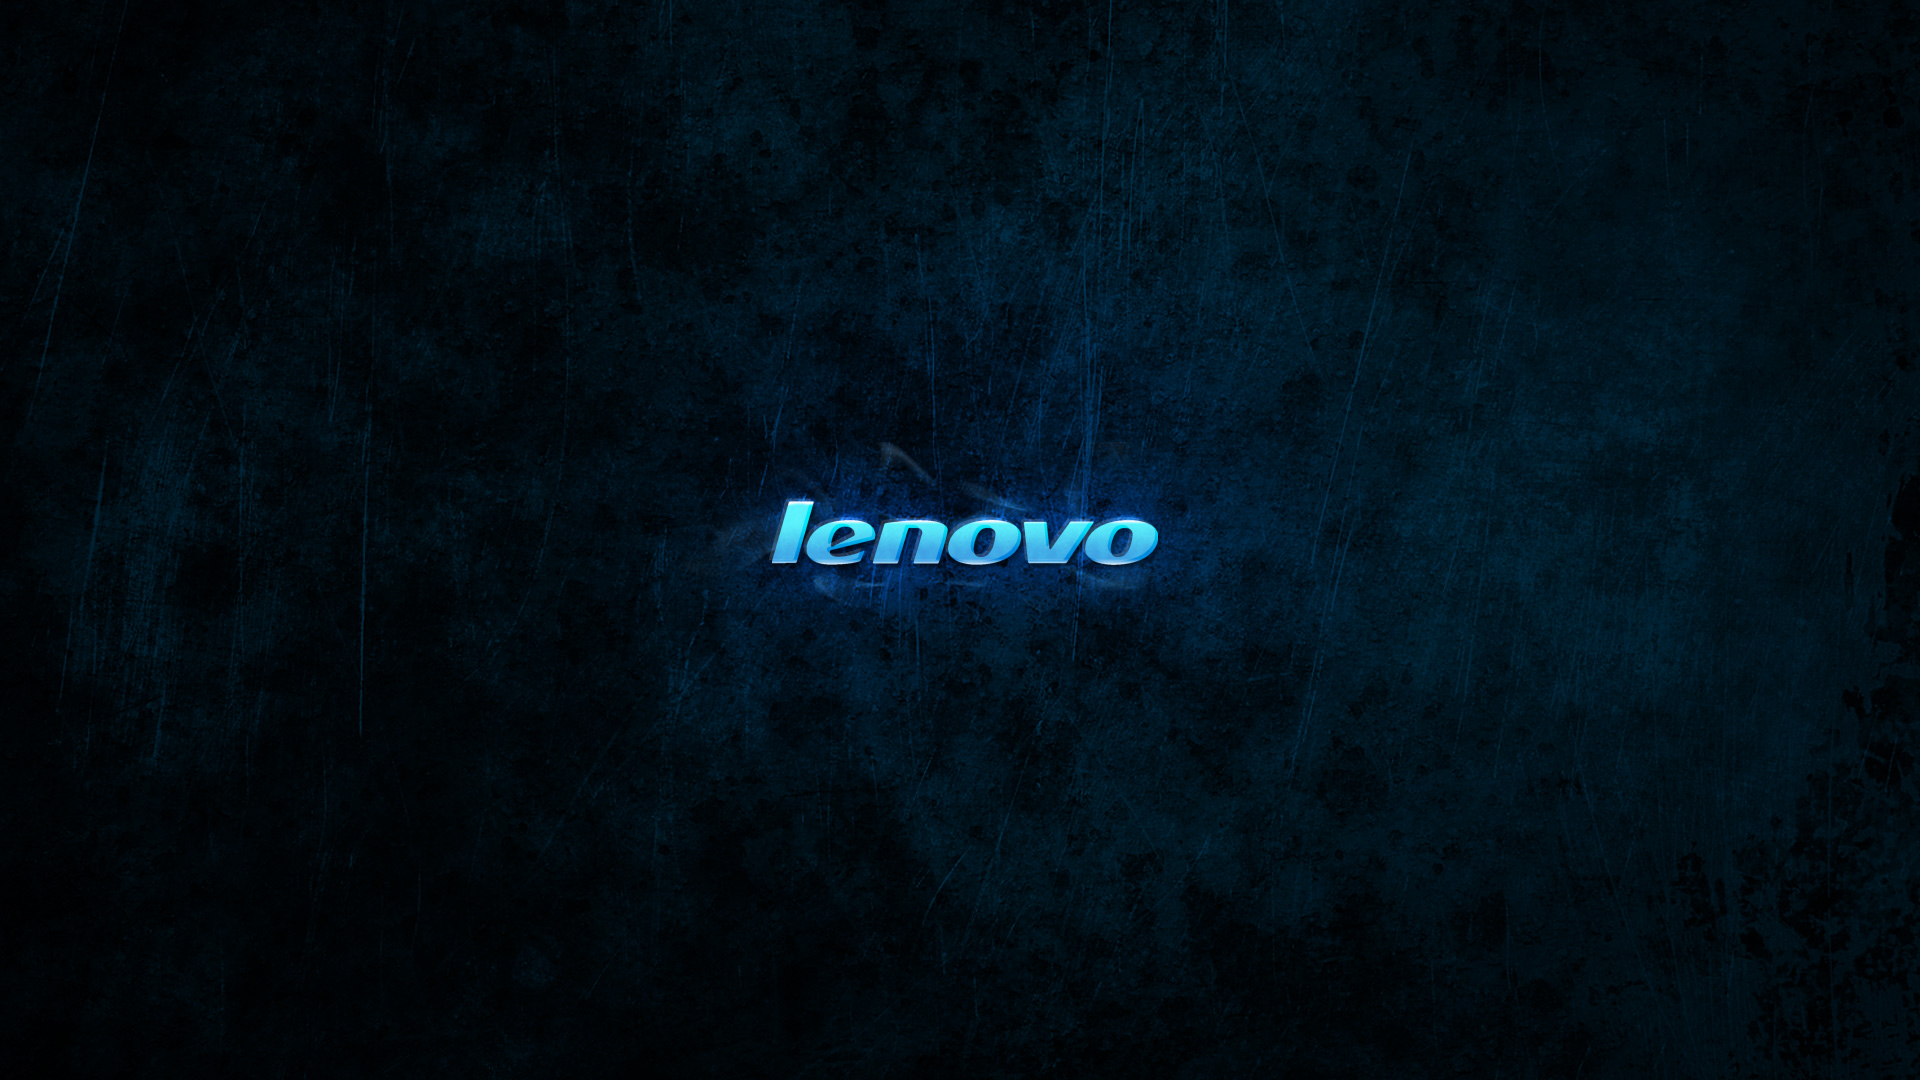 download lenovo wallpapers 048